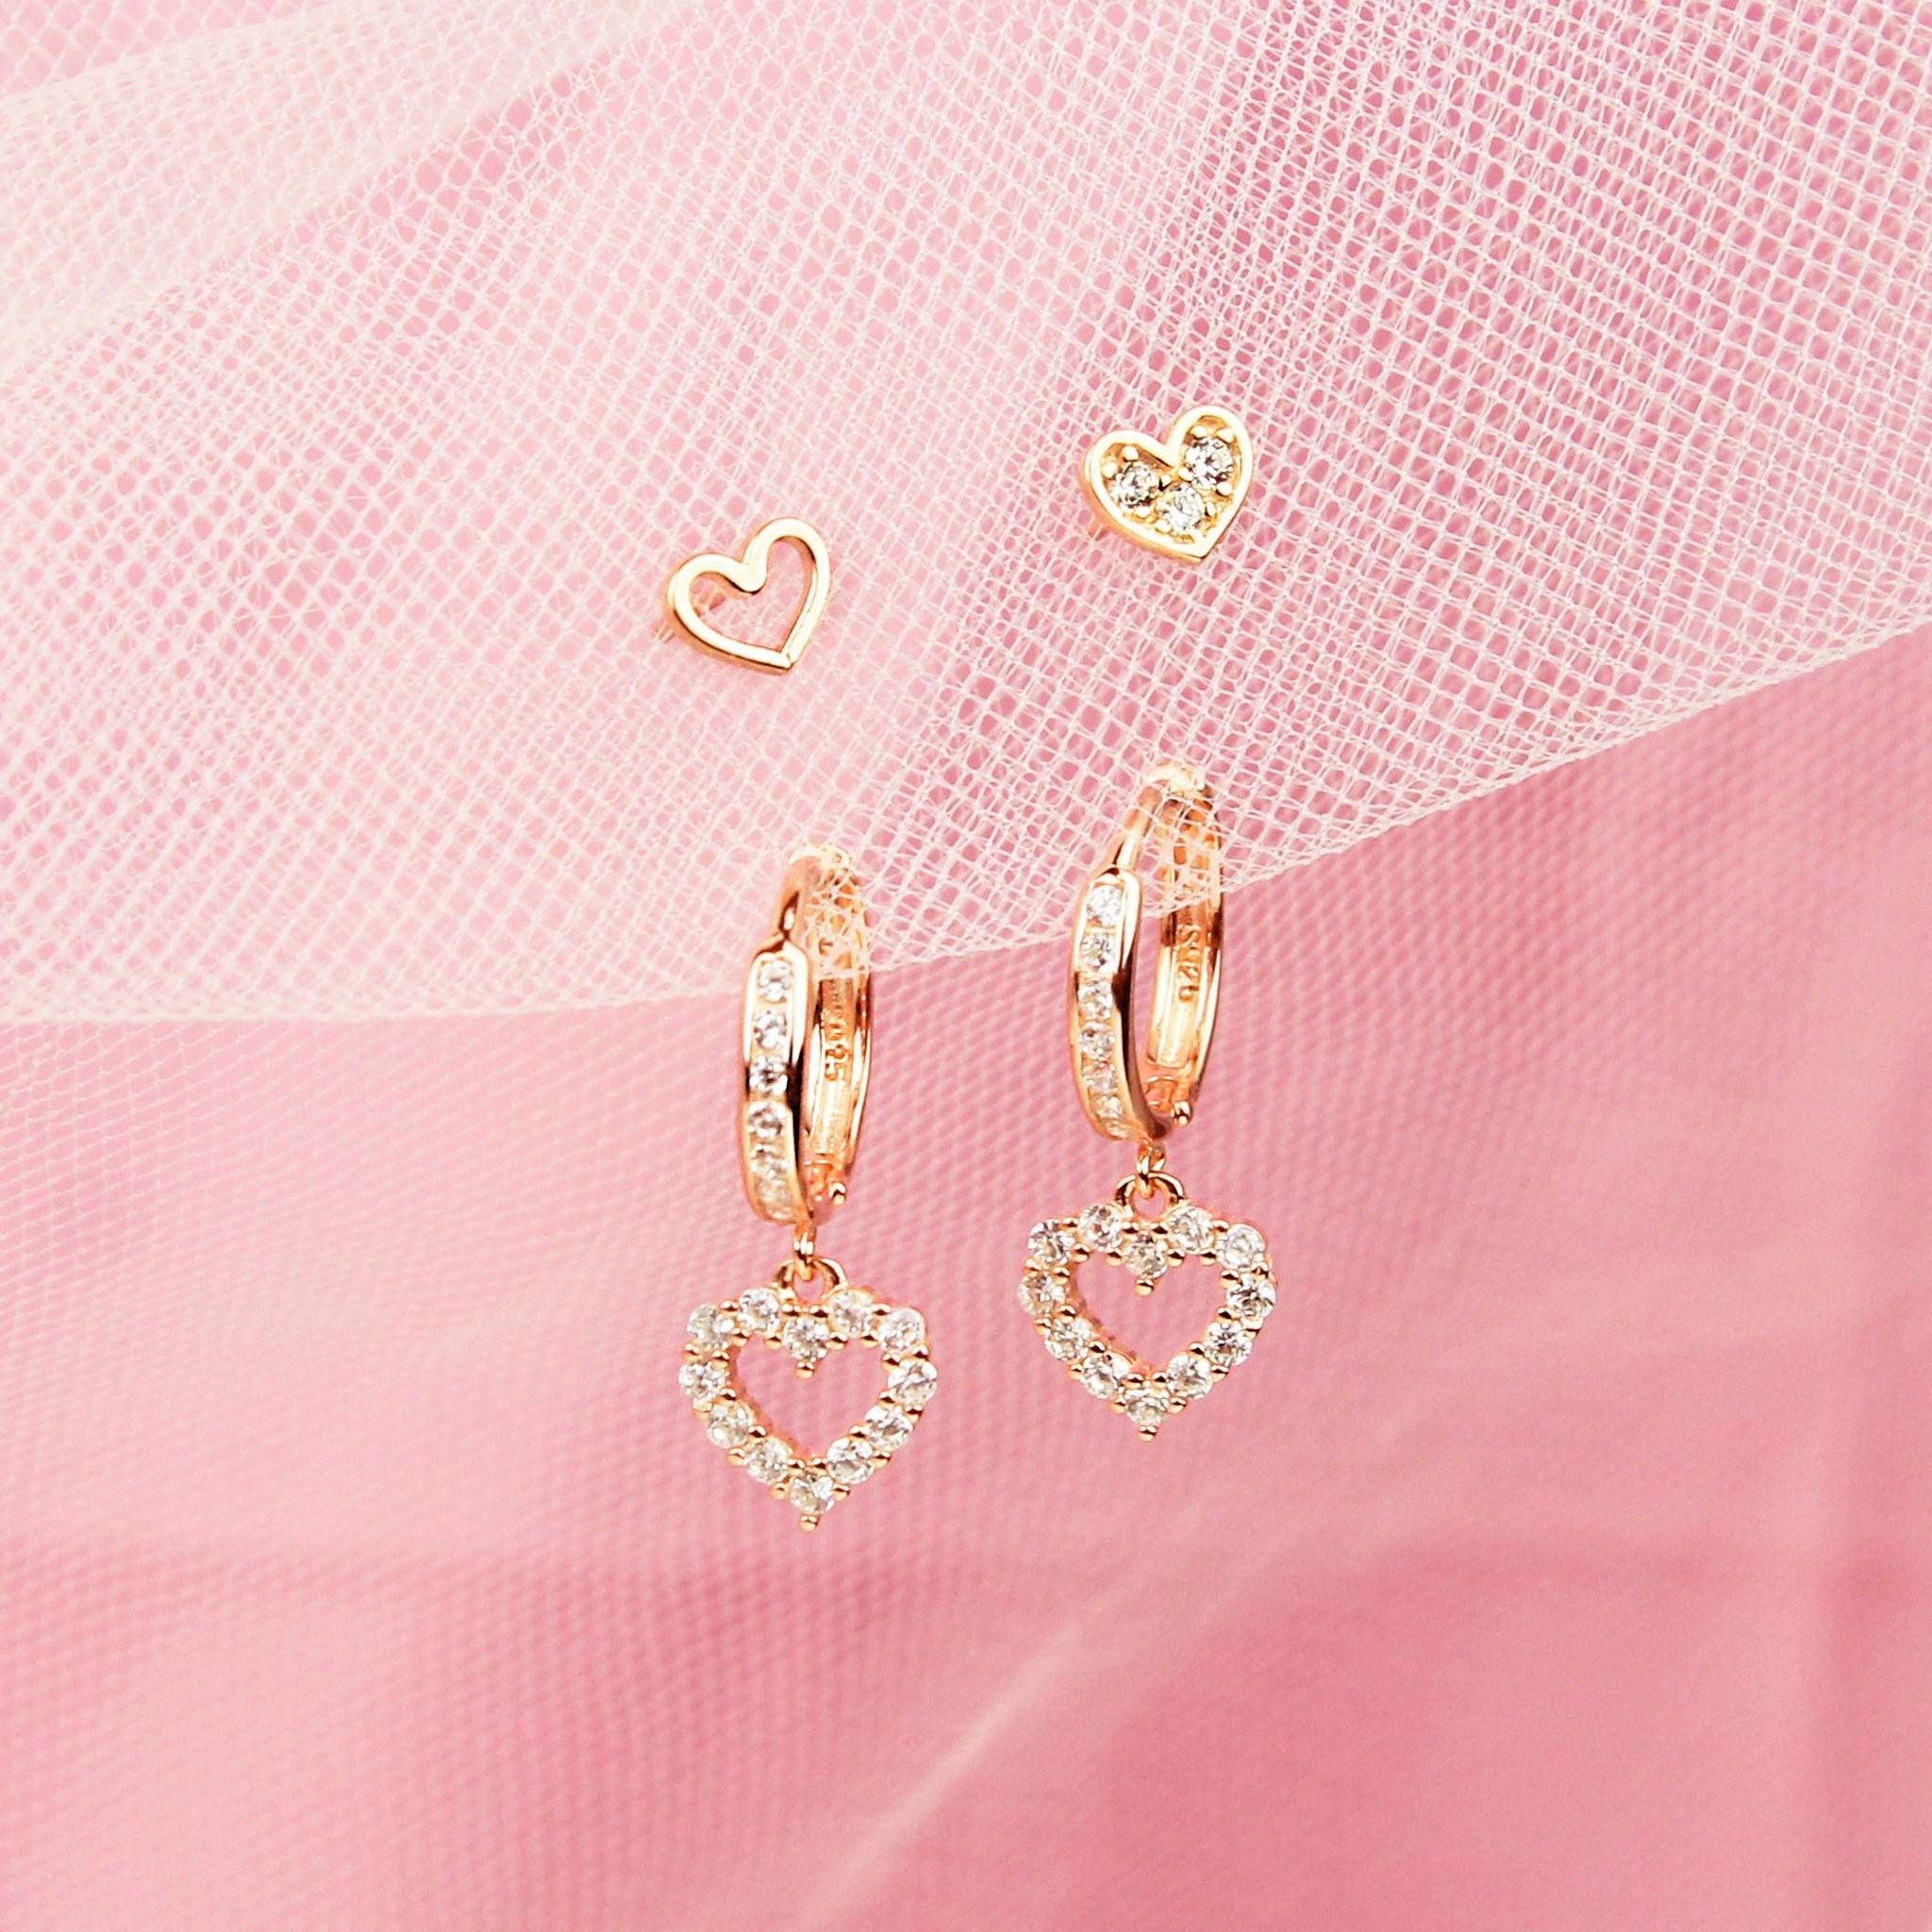 Lovely Heart Earring Set